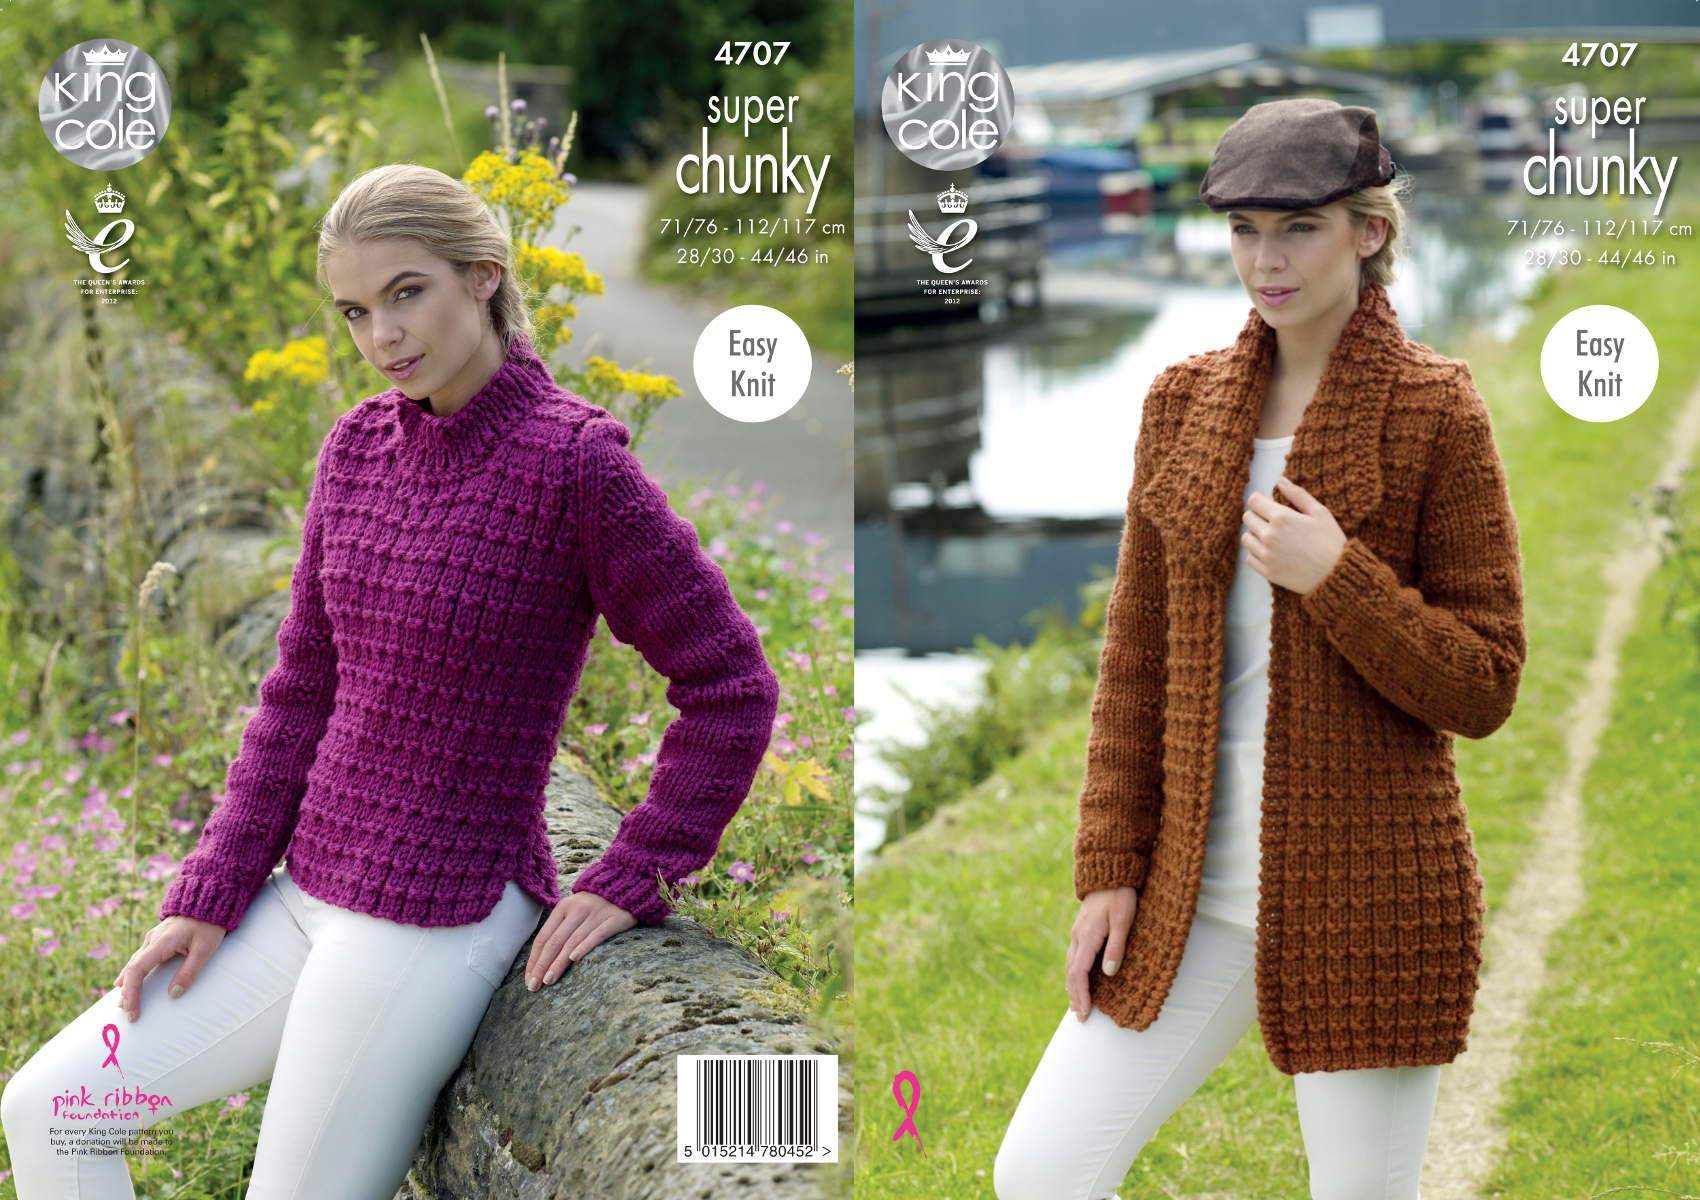 caf100bbf King Cole Ladies Super Chunky Knitting Pattern Easy Knit Jacket ...